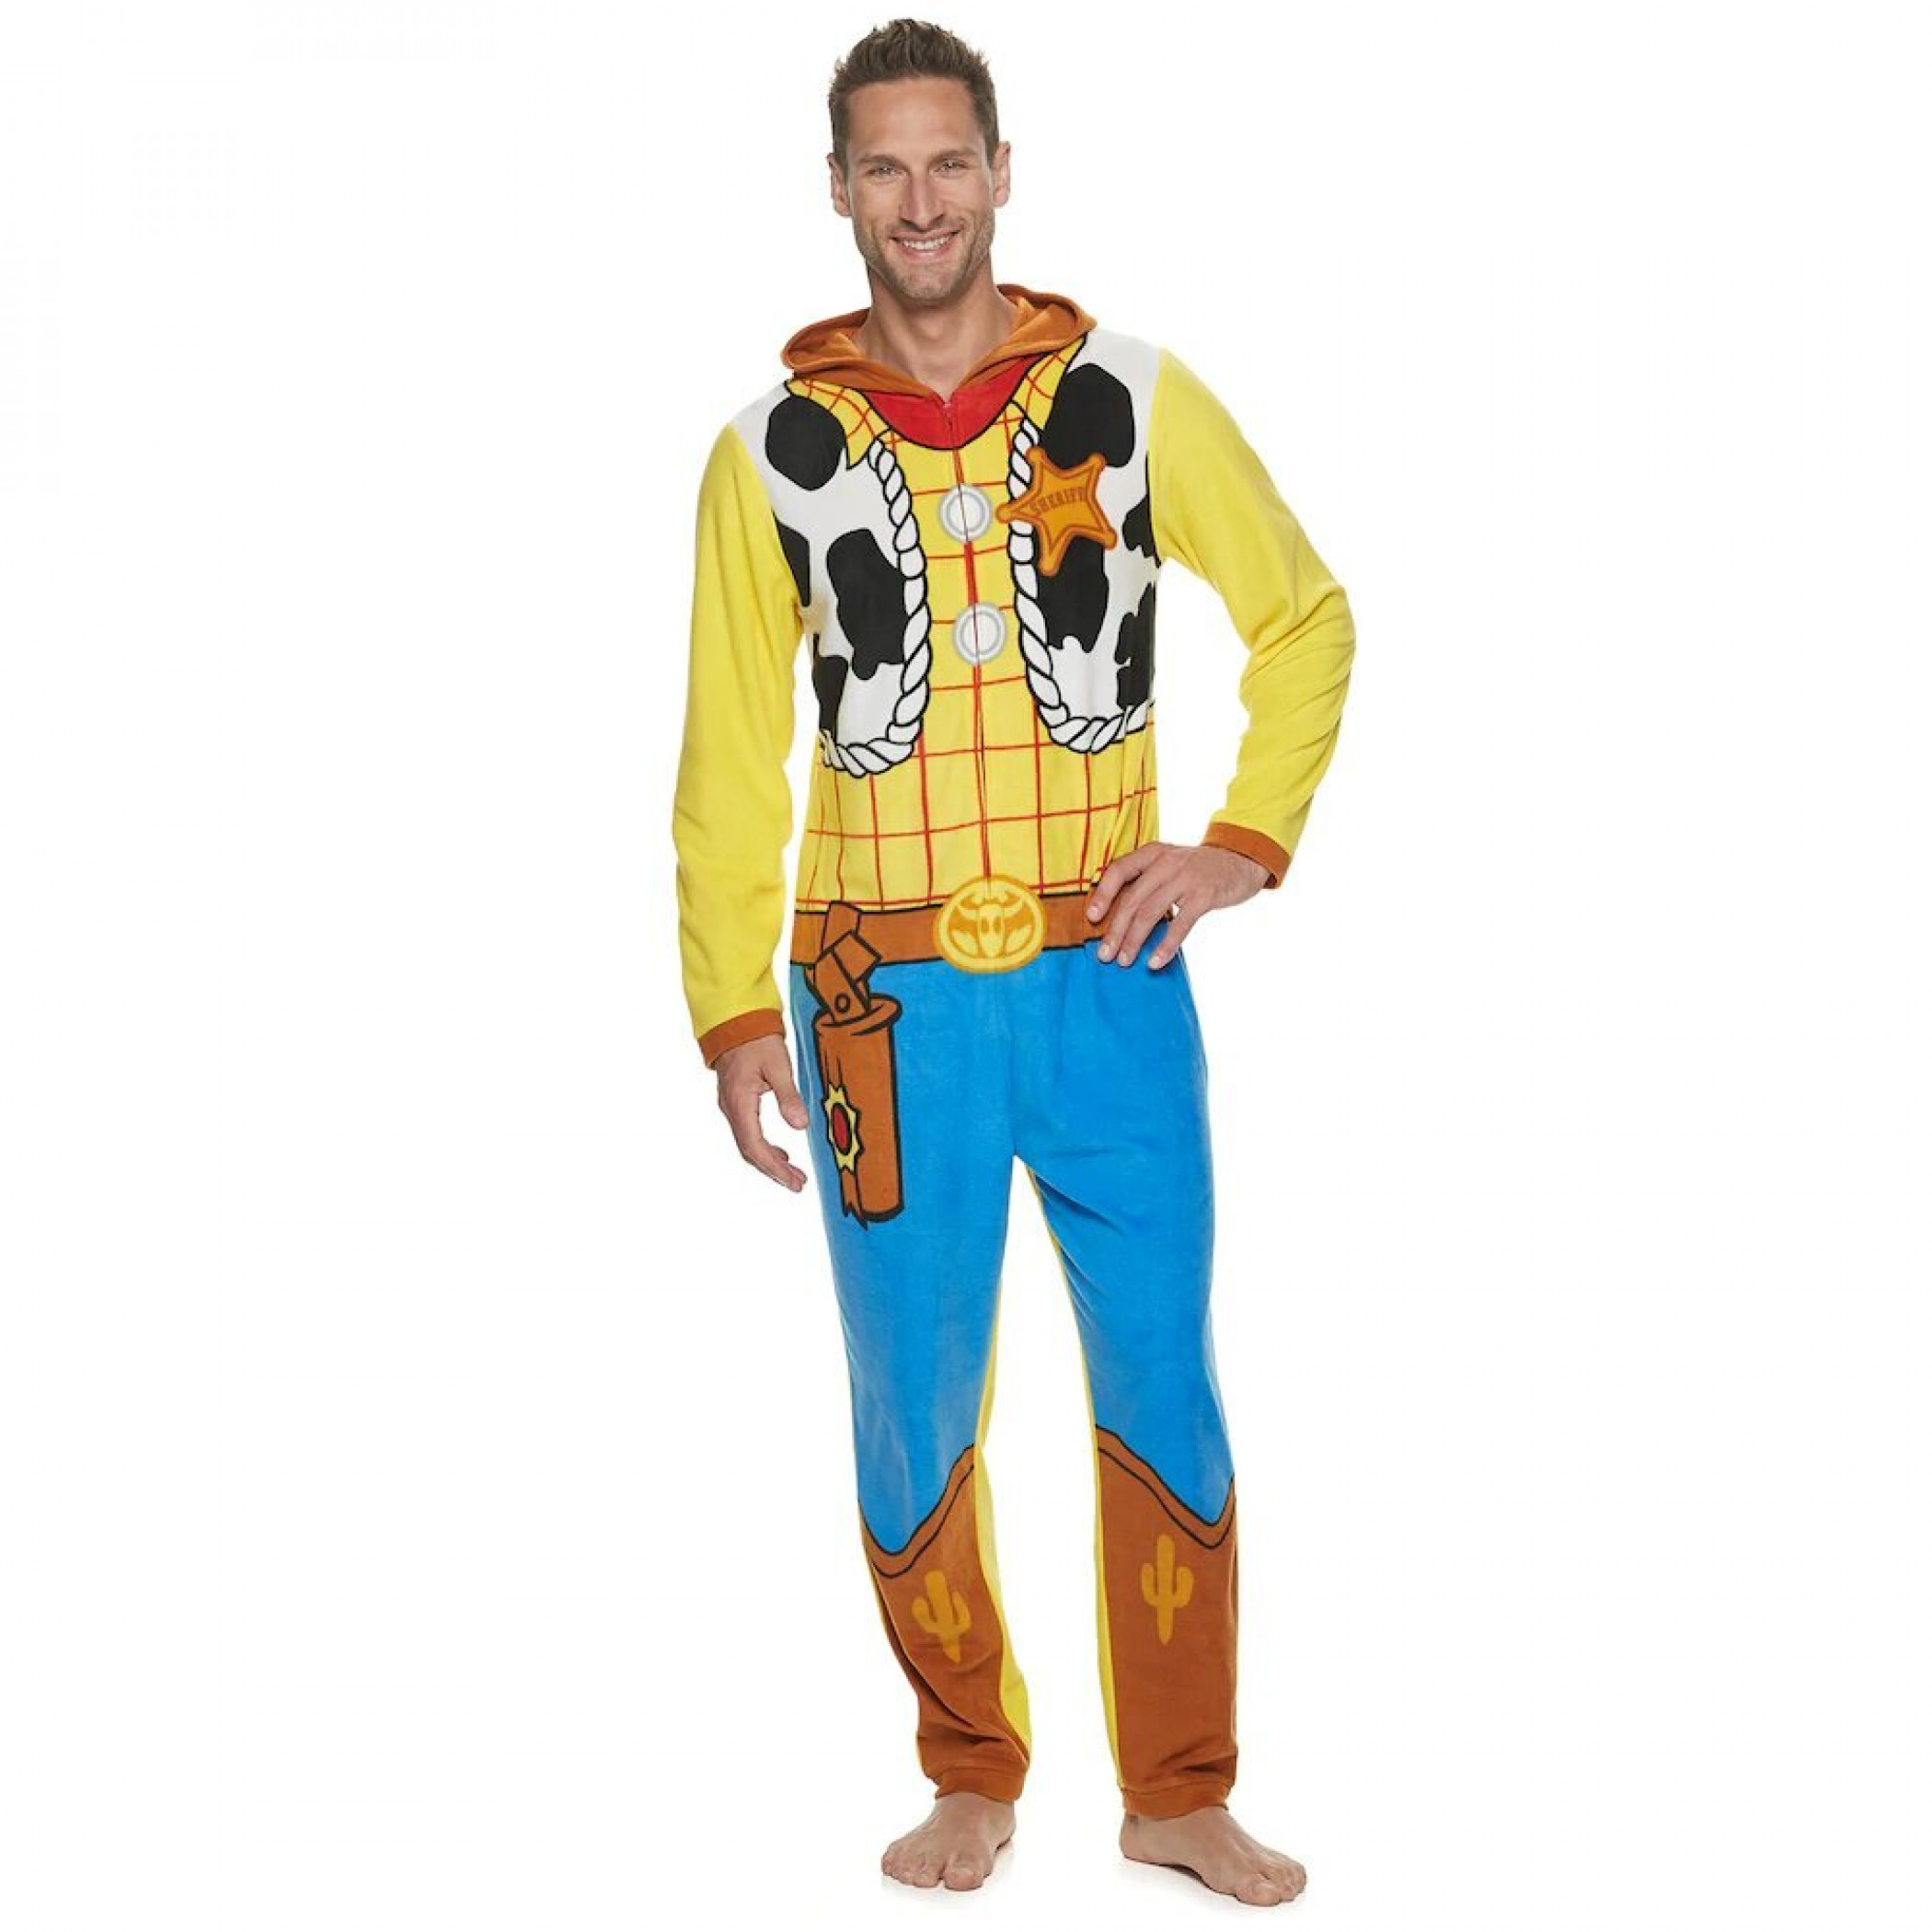 Toy Story's Woody Hooded Costume Micro Fleece Union Suit